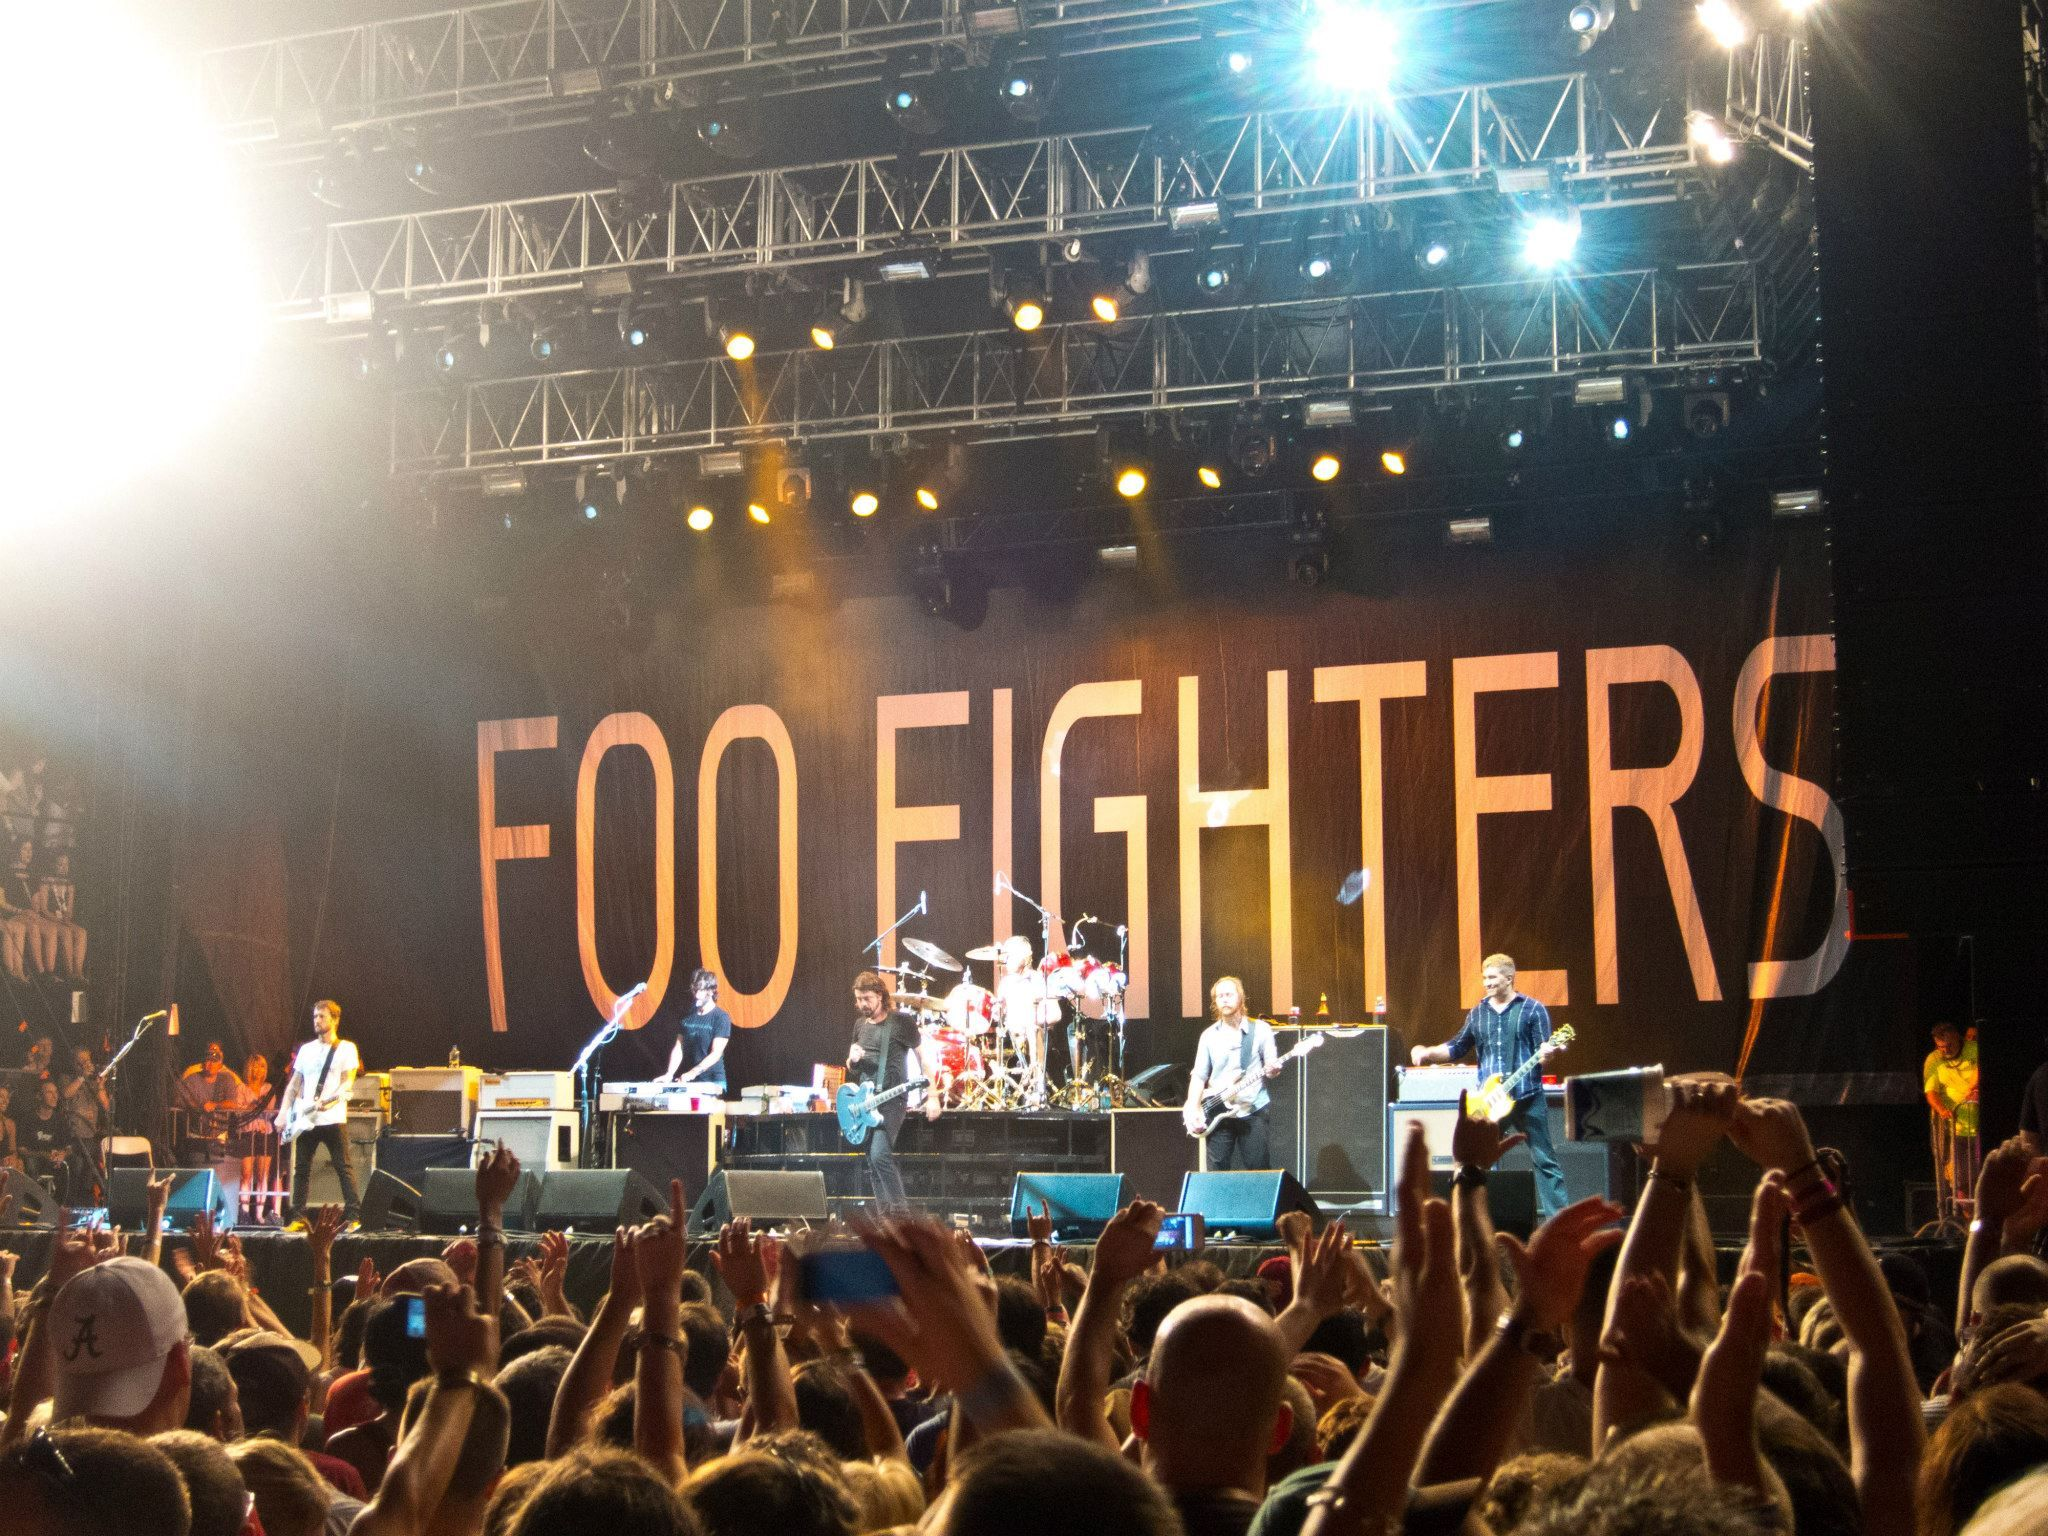 Foo Fighters Back On Tour Check Out Their Schedule And Get Tickets To See The Perform Live